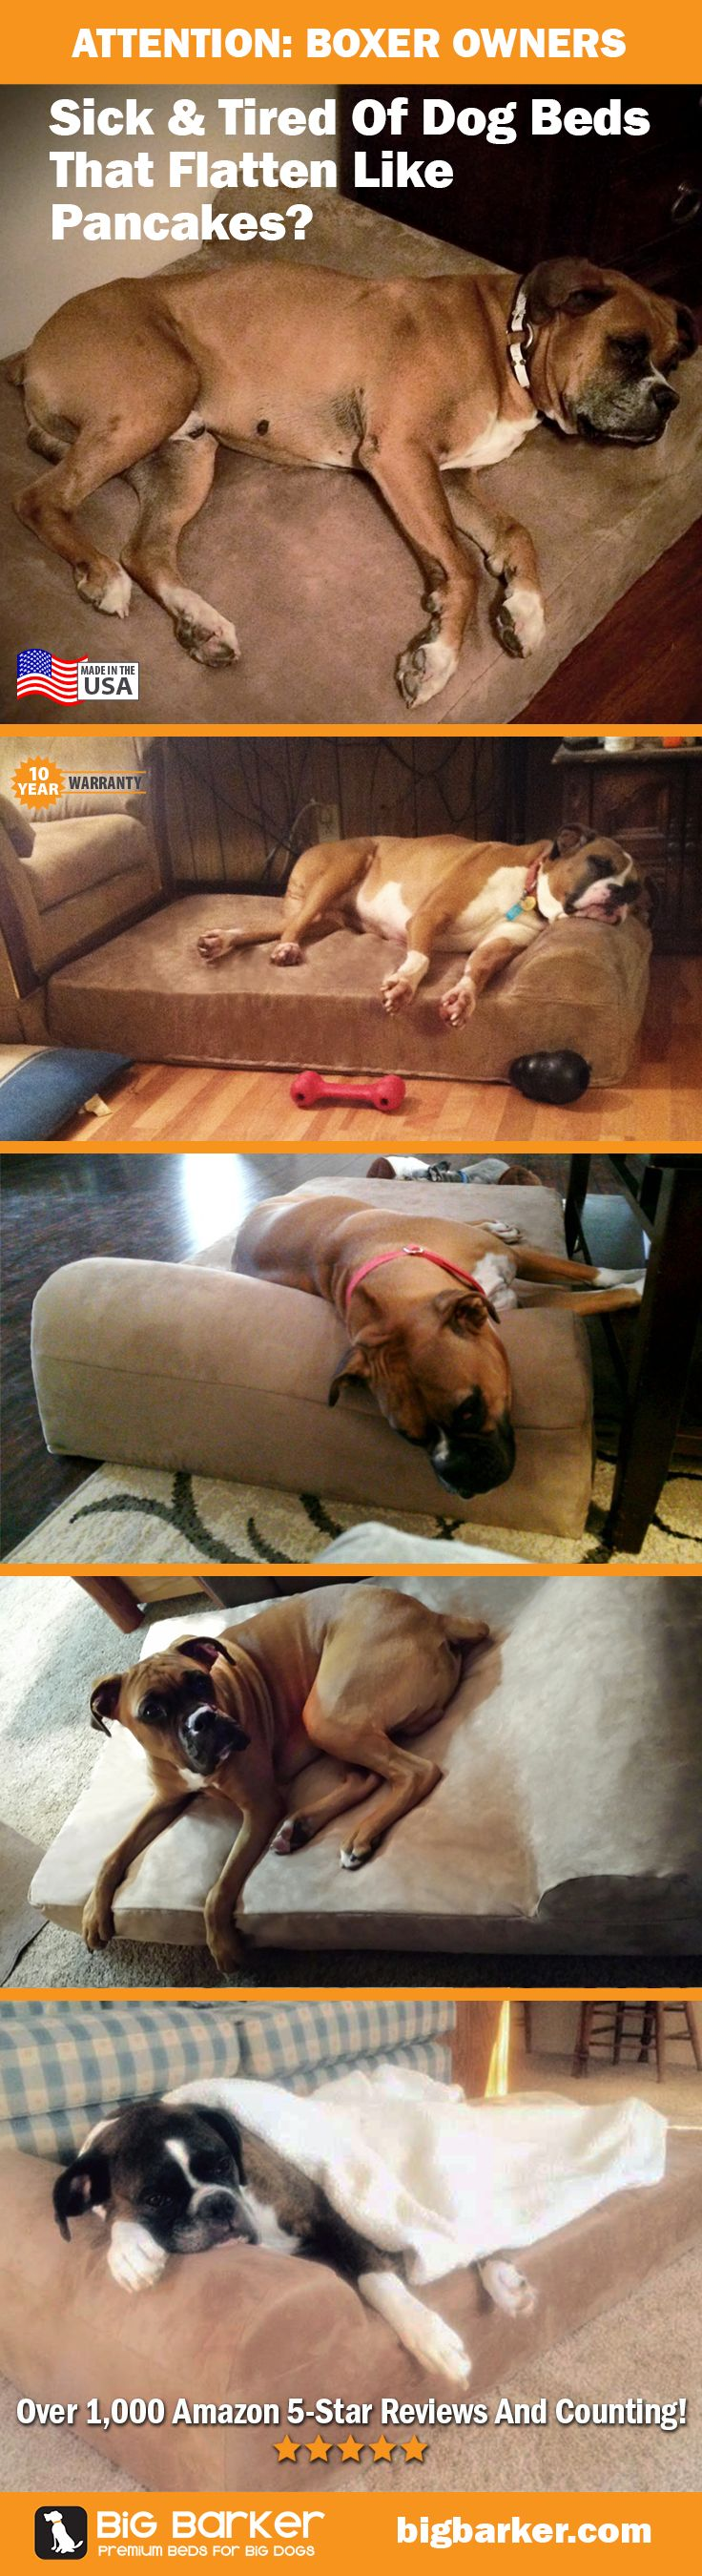 Boxer dog bed by Big Barker | Perfect for big dogs like boxers. See more pictures at http://bigbarker.com